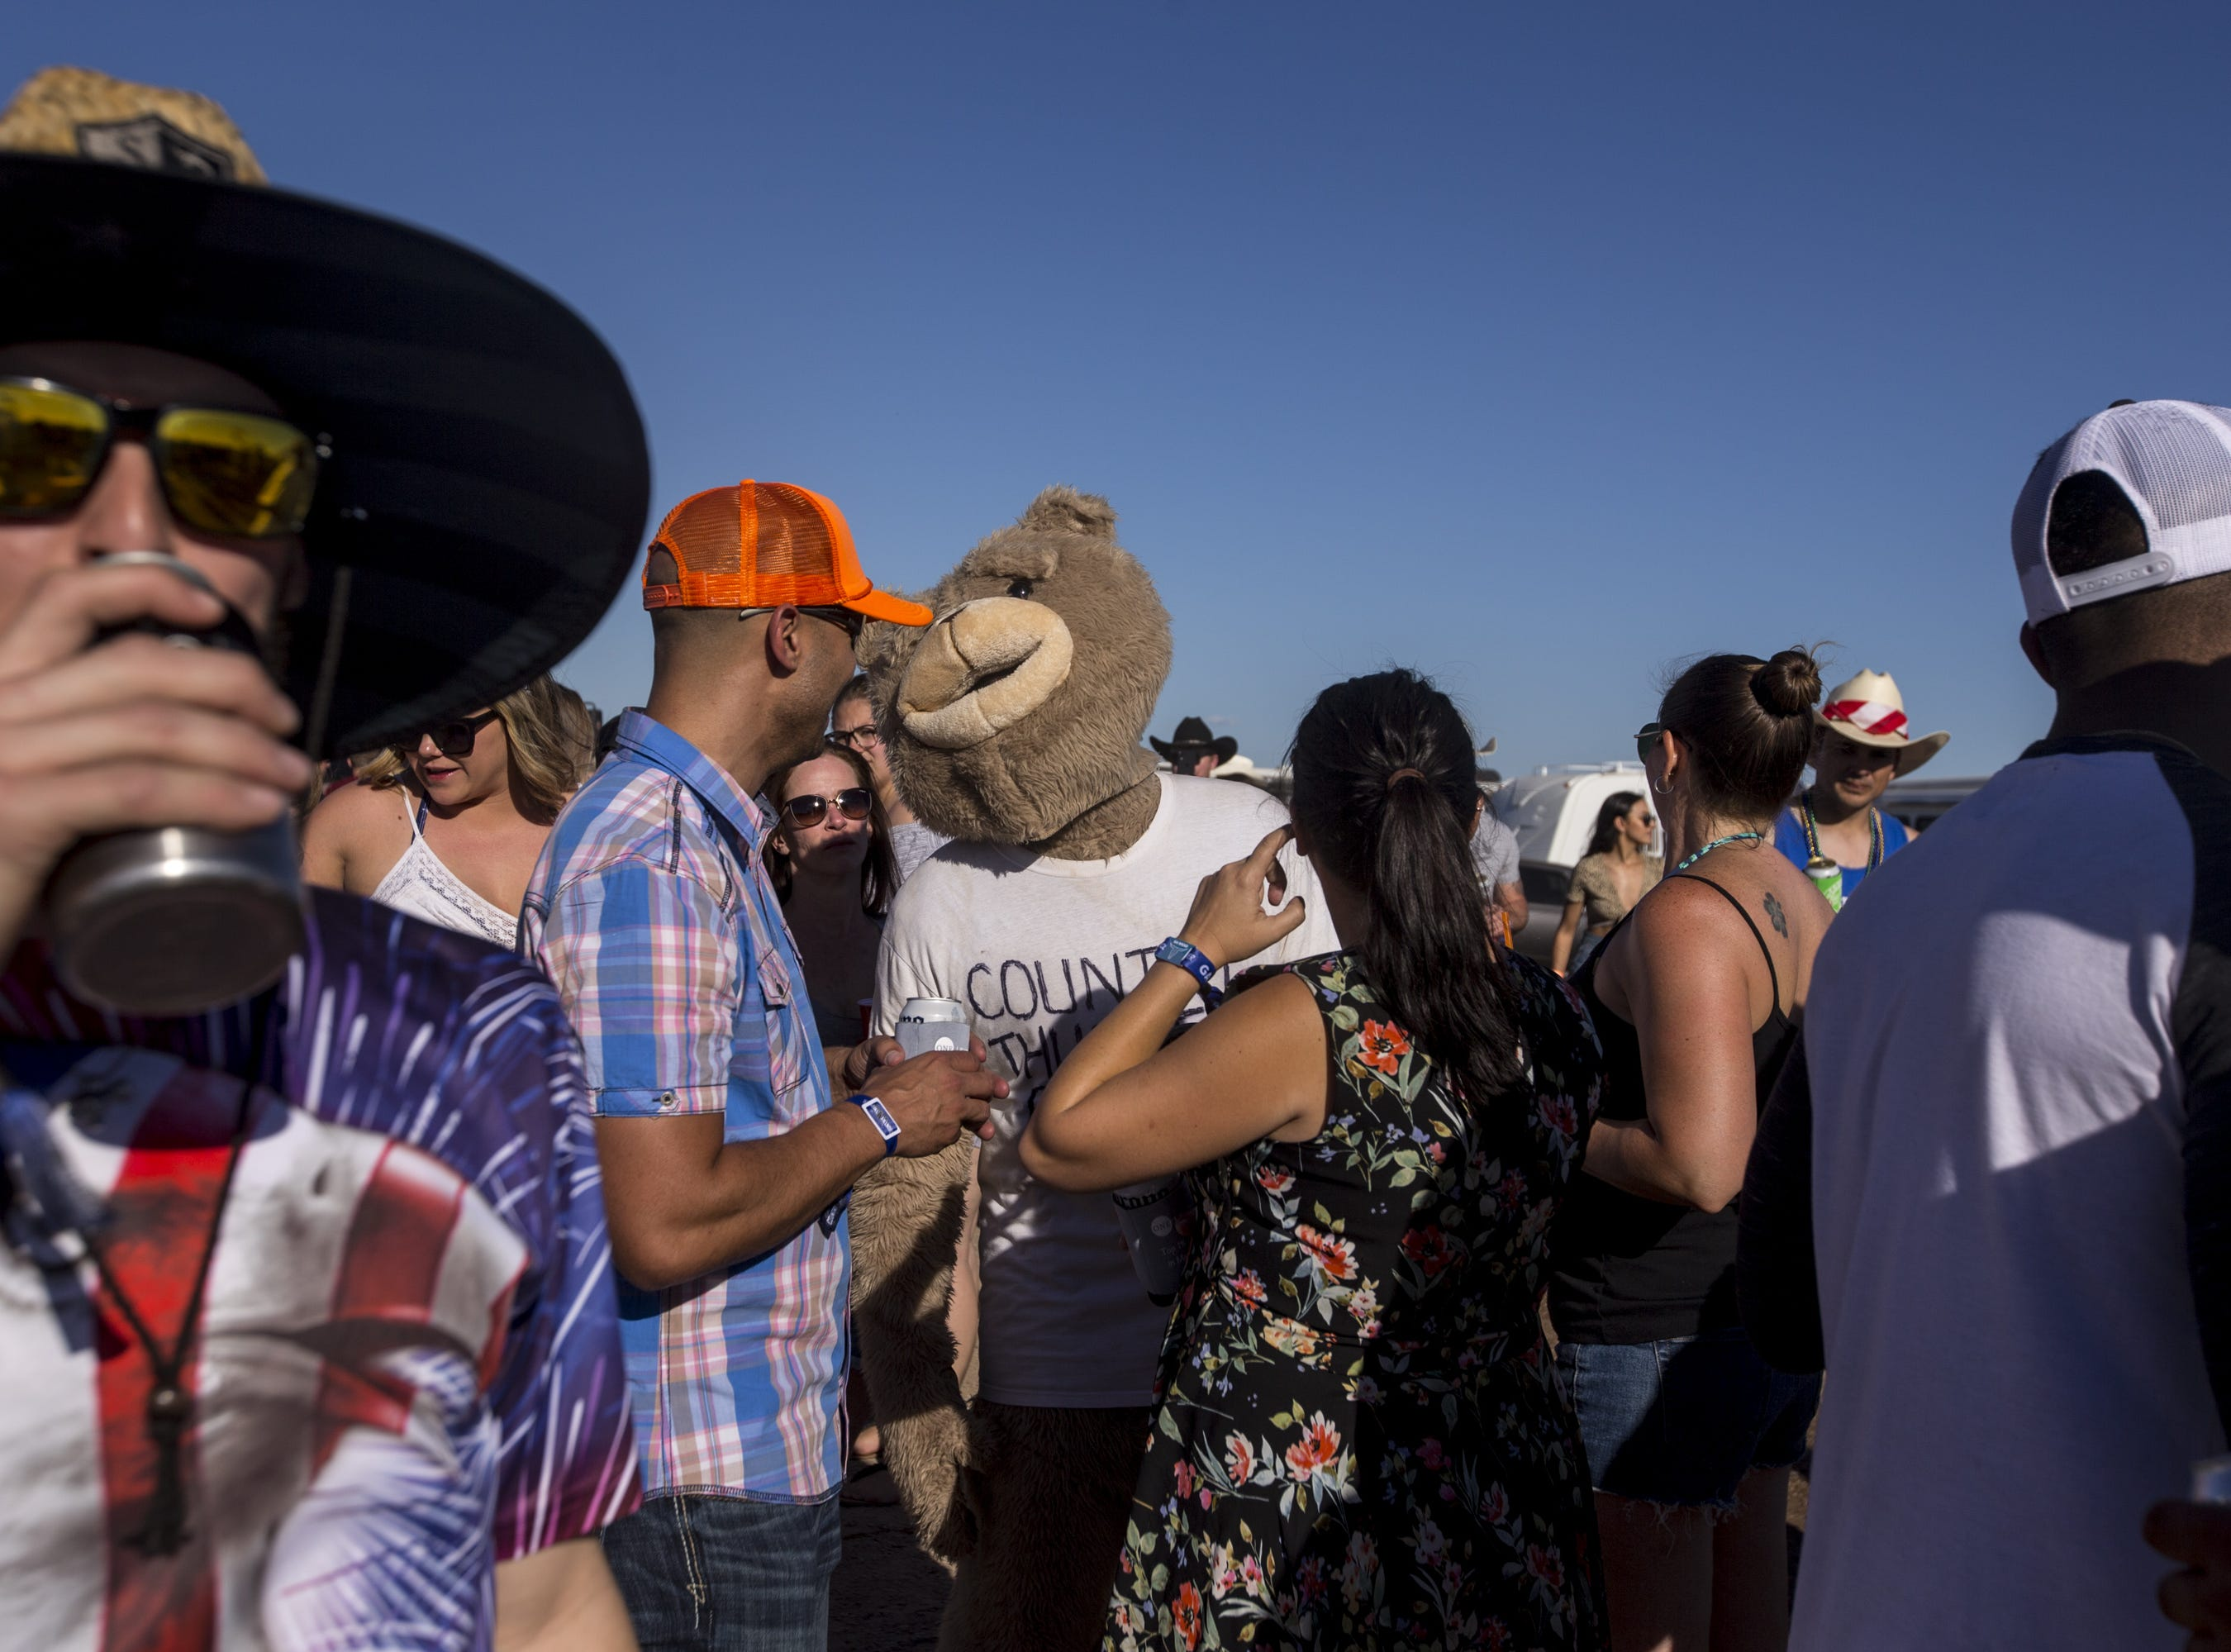 Festival-goers walk around the Crazy Coyote campground on Saturday, April 13, 2019, during Day 3 of Country Thunder Arizona in Florence, Ariz.